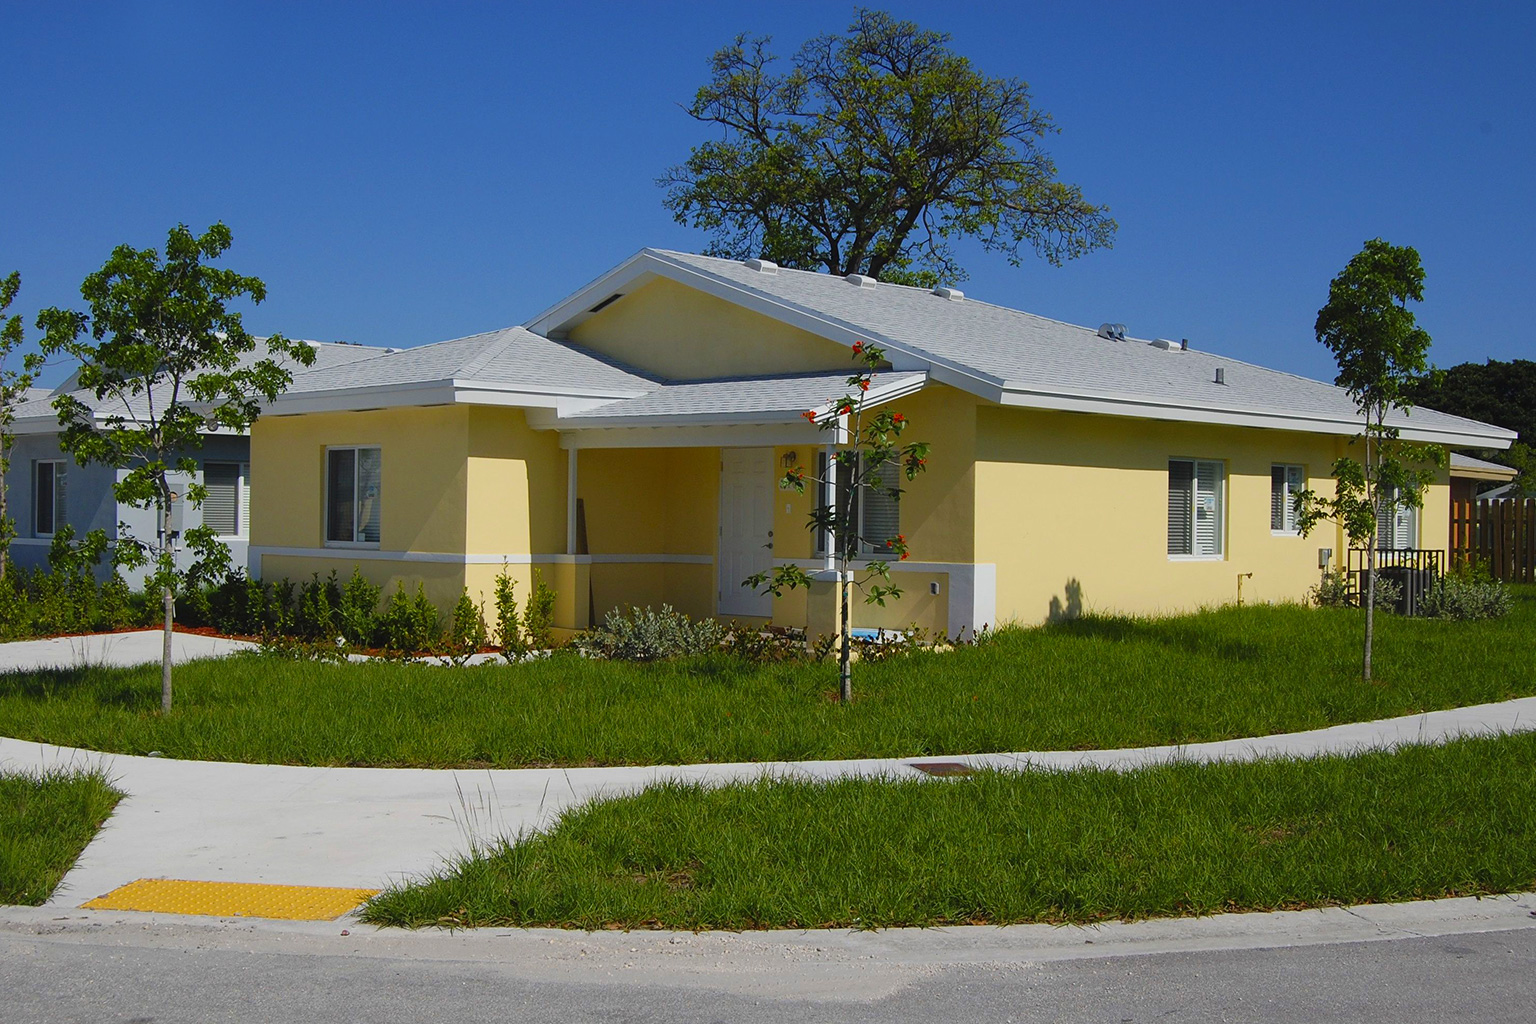 a property developed by Neighborhood Housing Services of South Florida